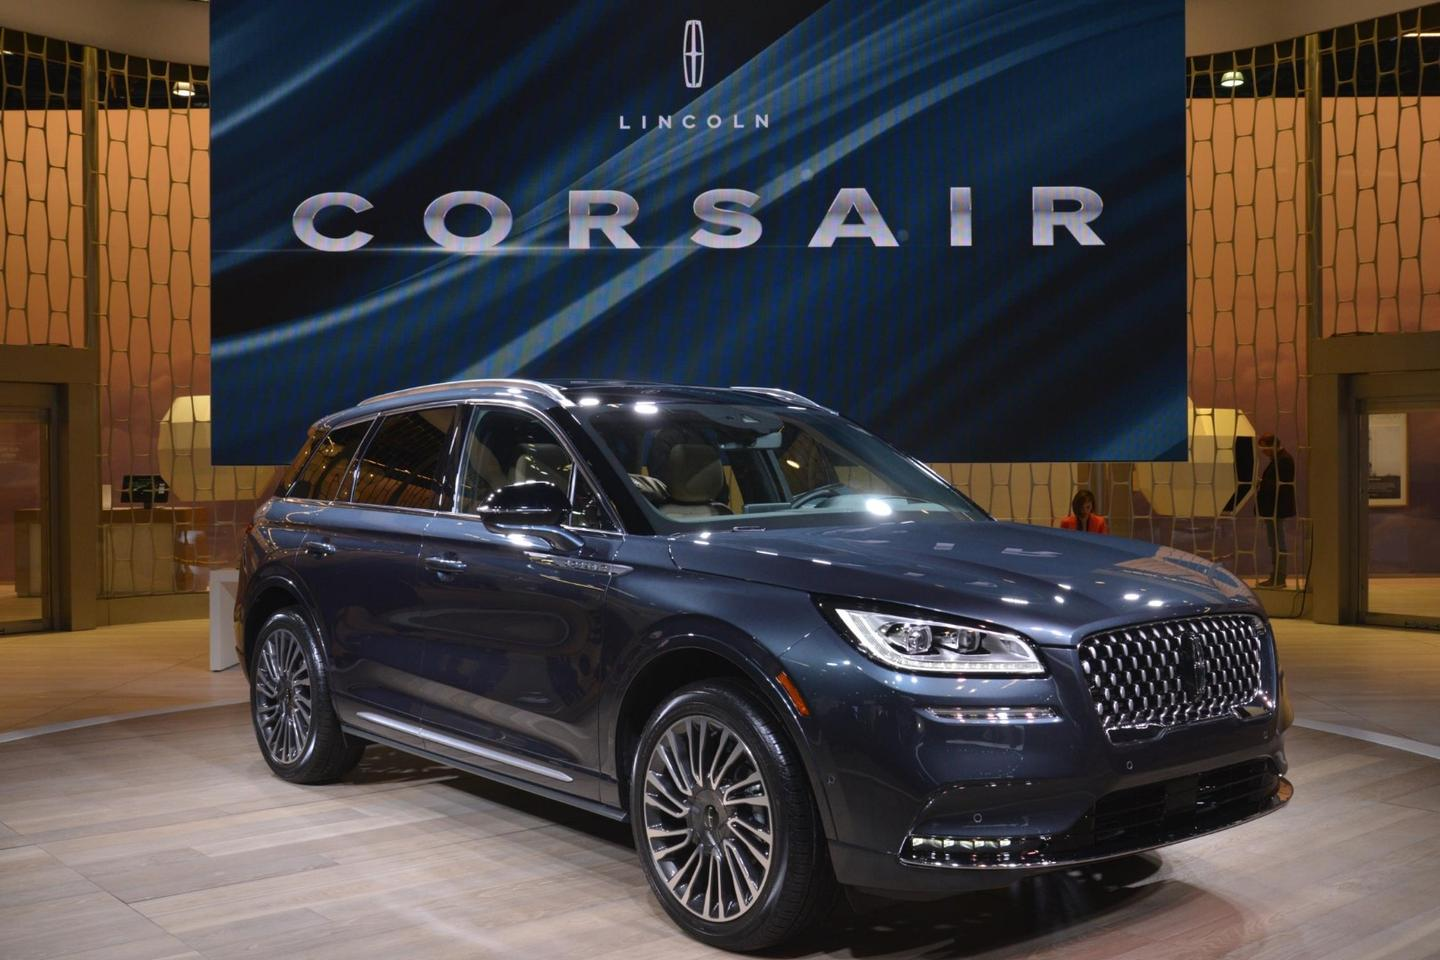 Lincoln introduces the baby of its SUVfamily, the Corsair